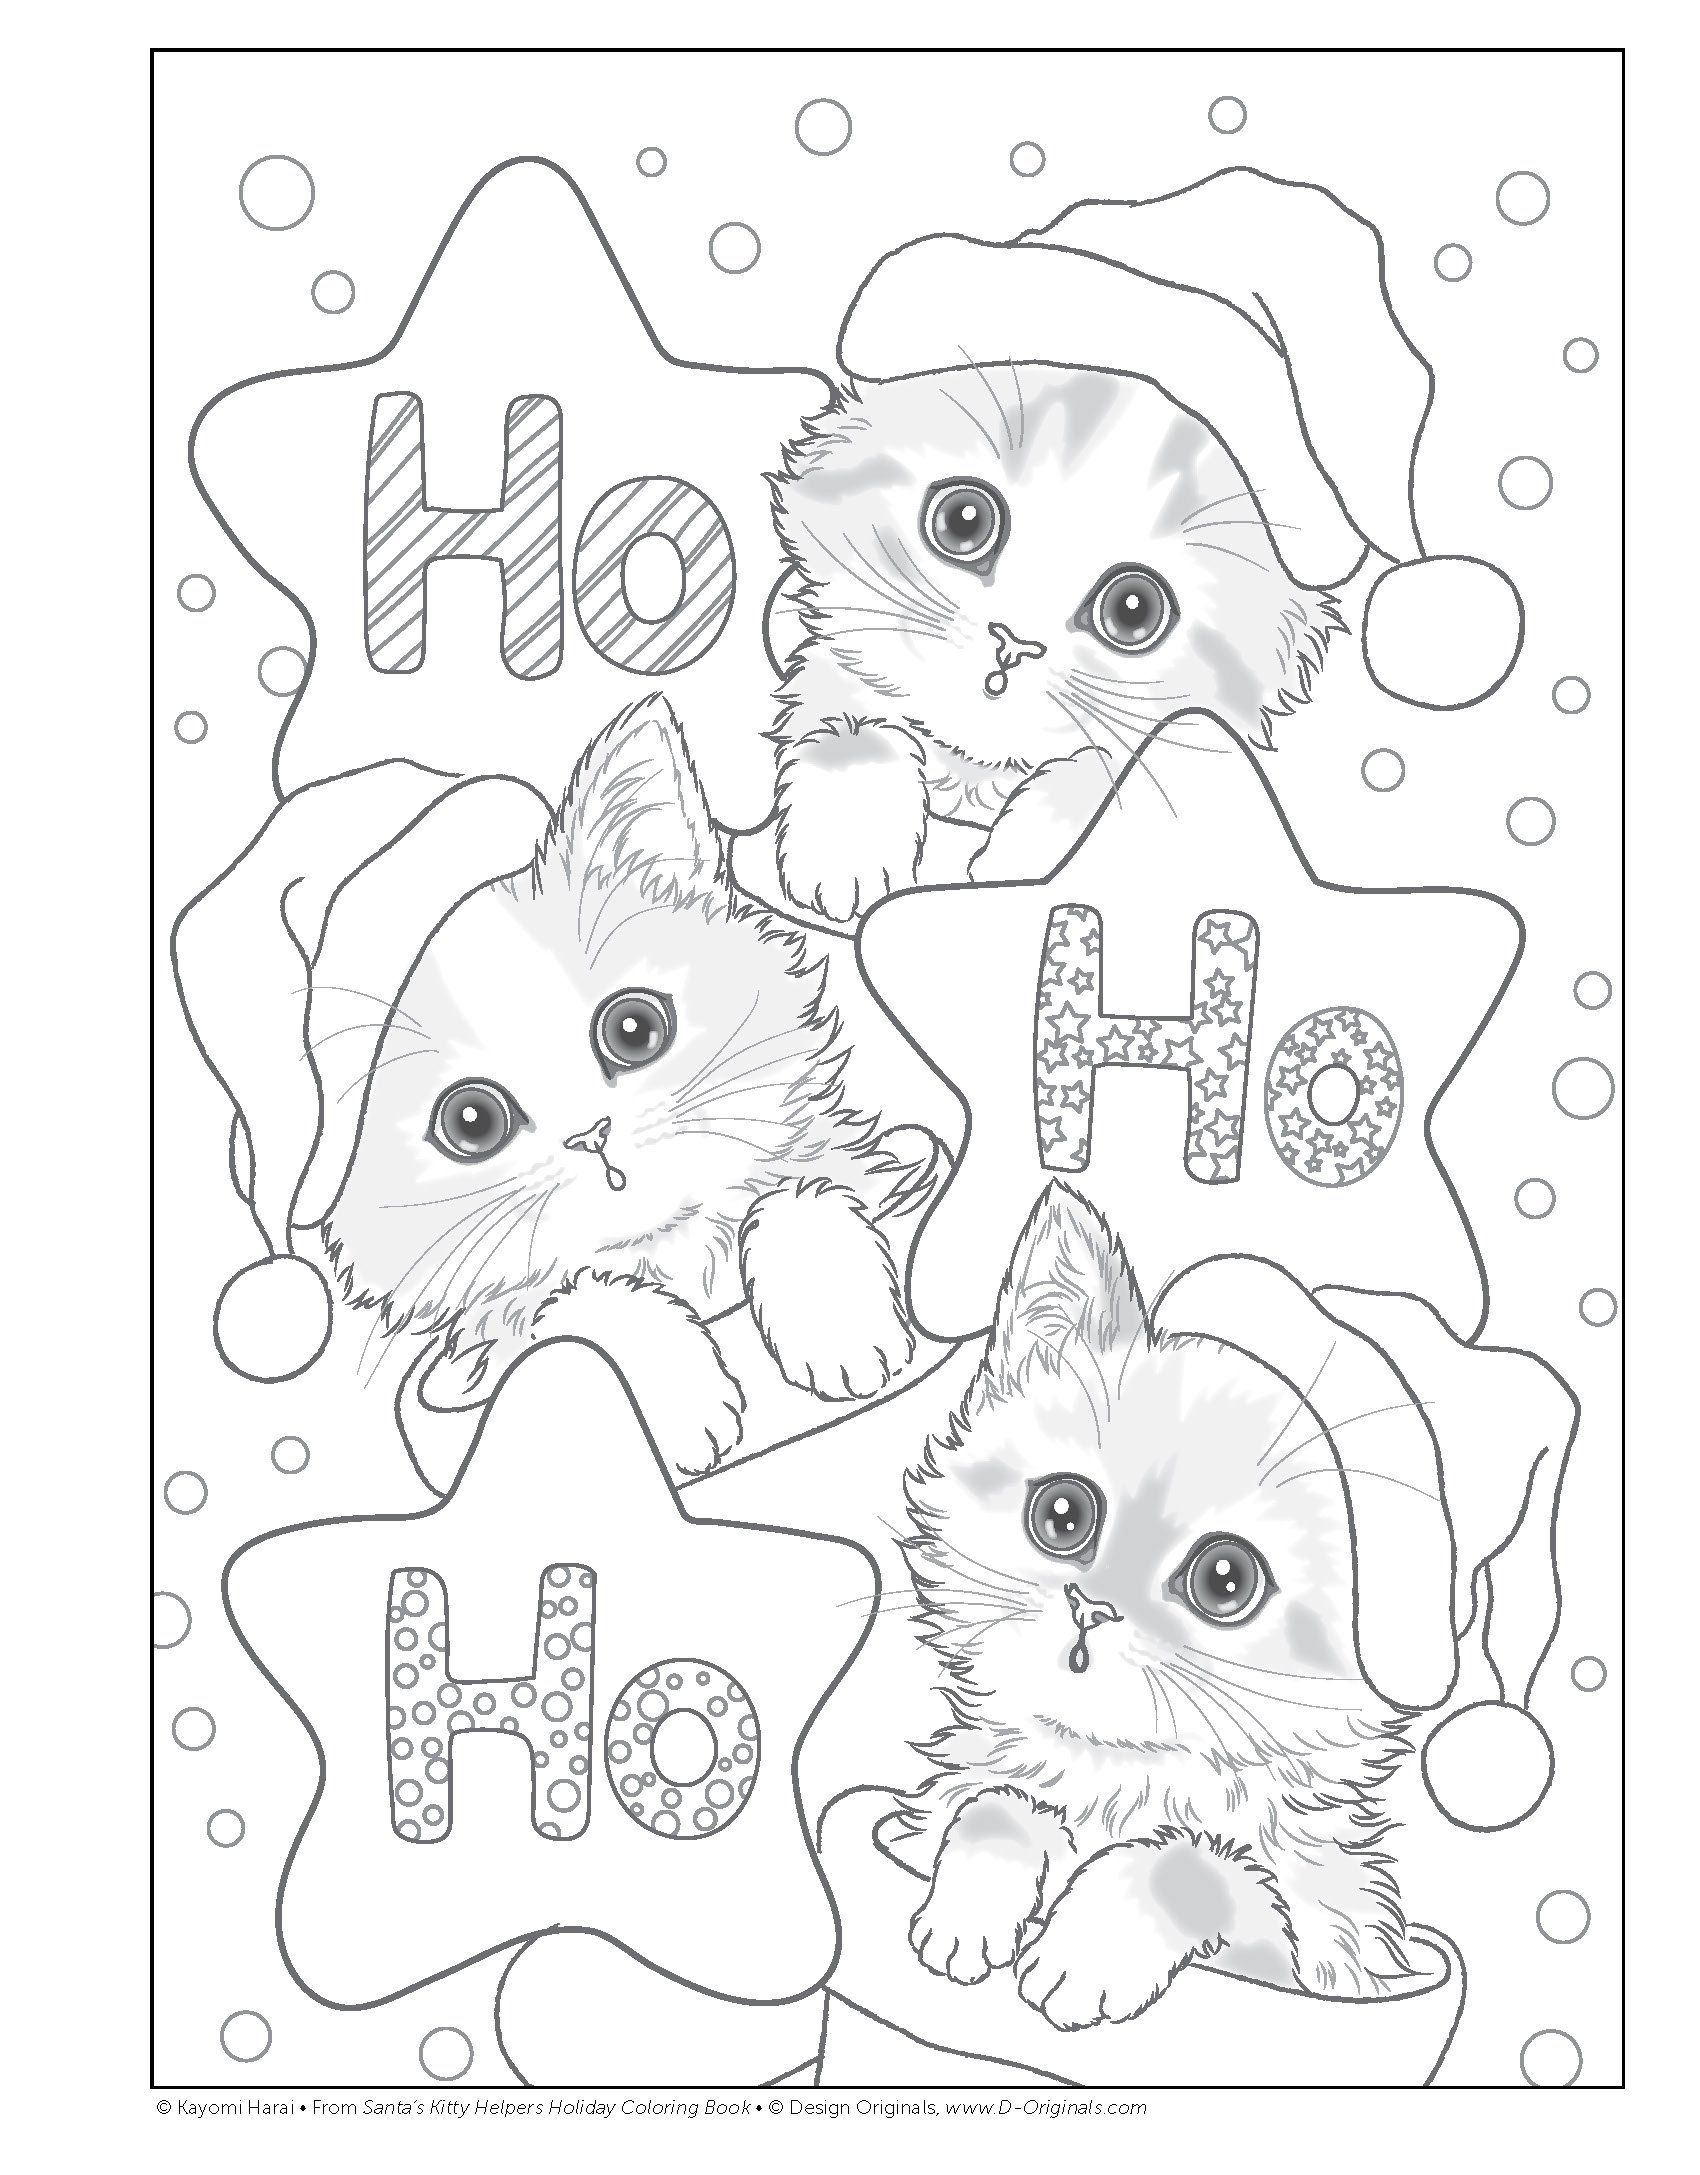 - Santa's Kitty Helpers Holiday Coloring Book (Design Originals